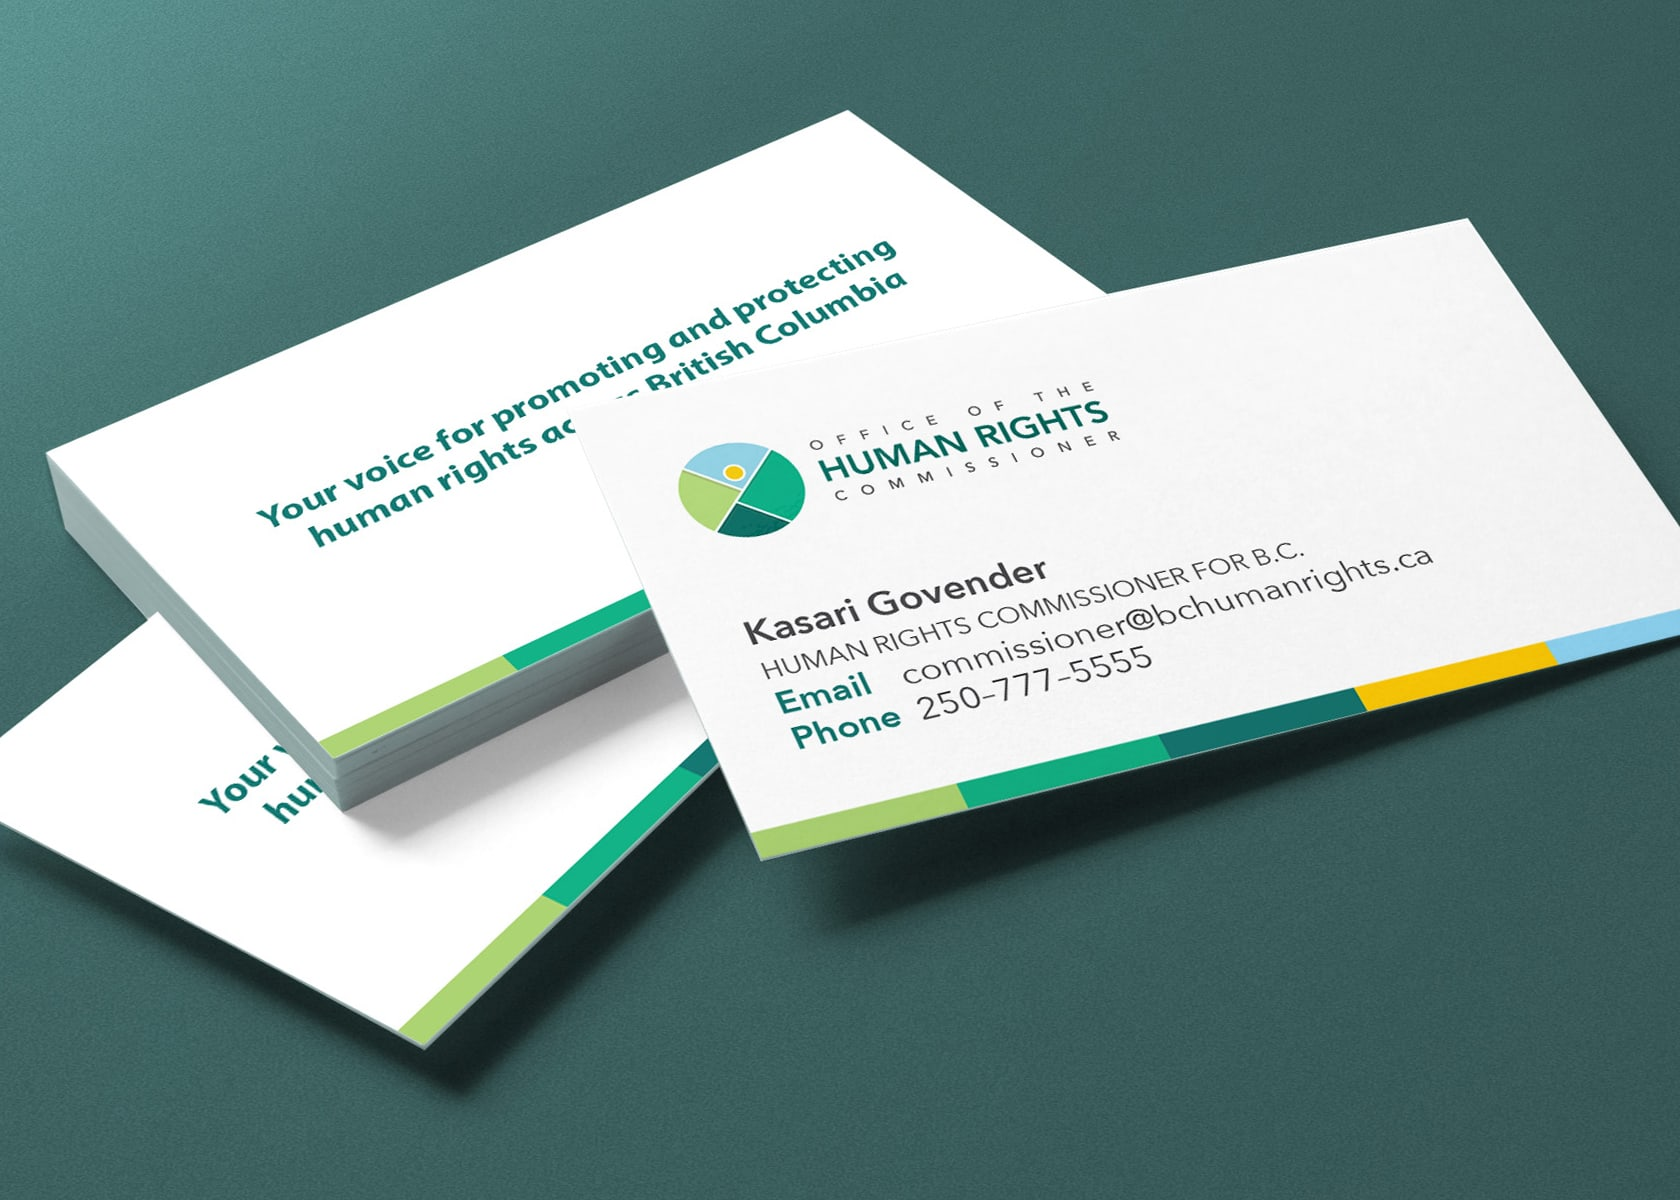 Office of the Human Rights Commissioner business cards